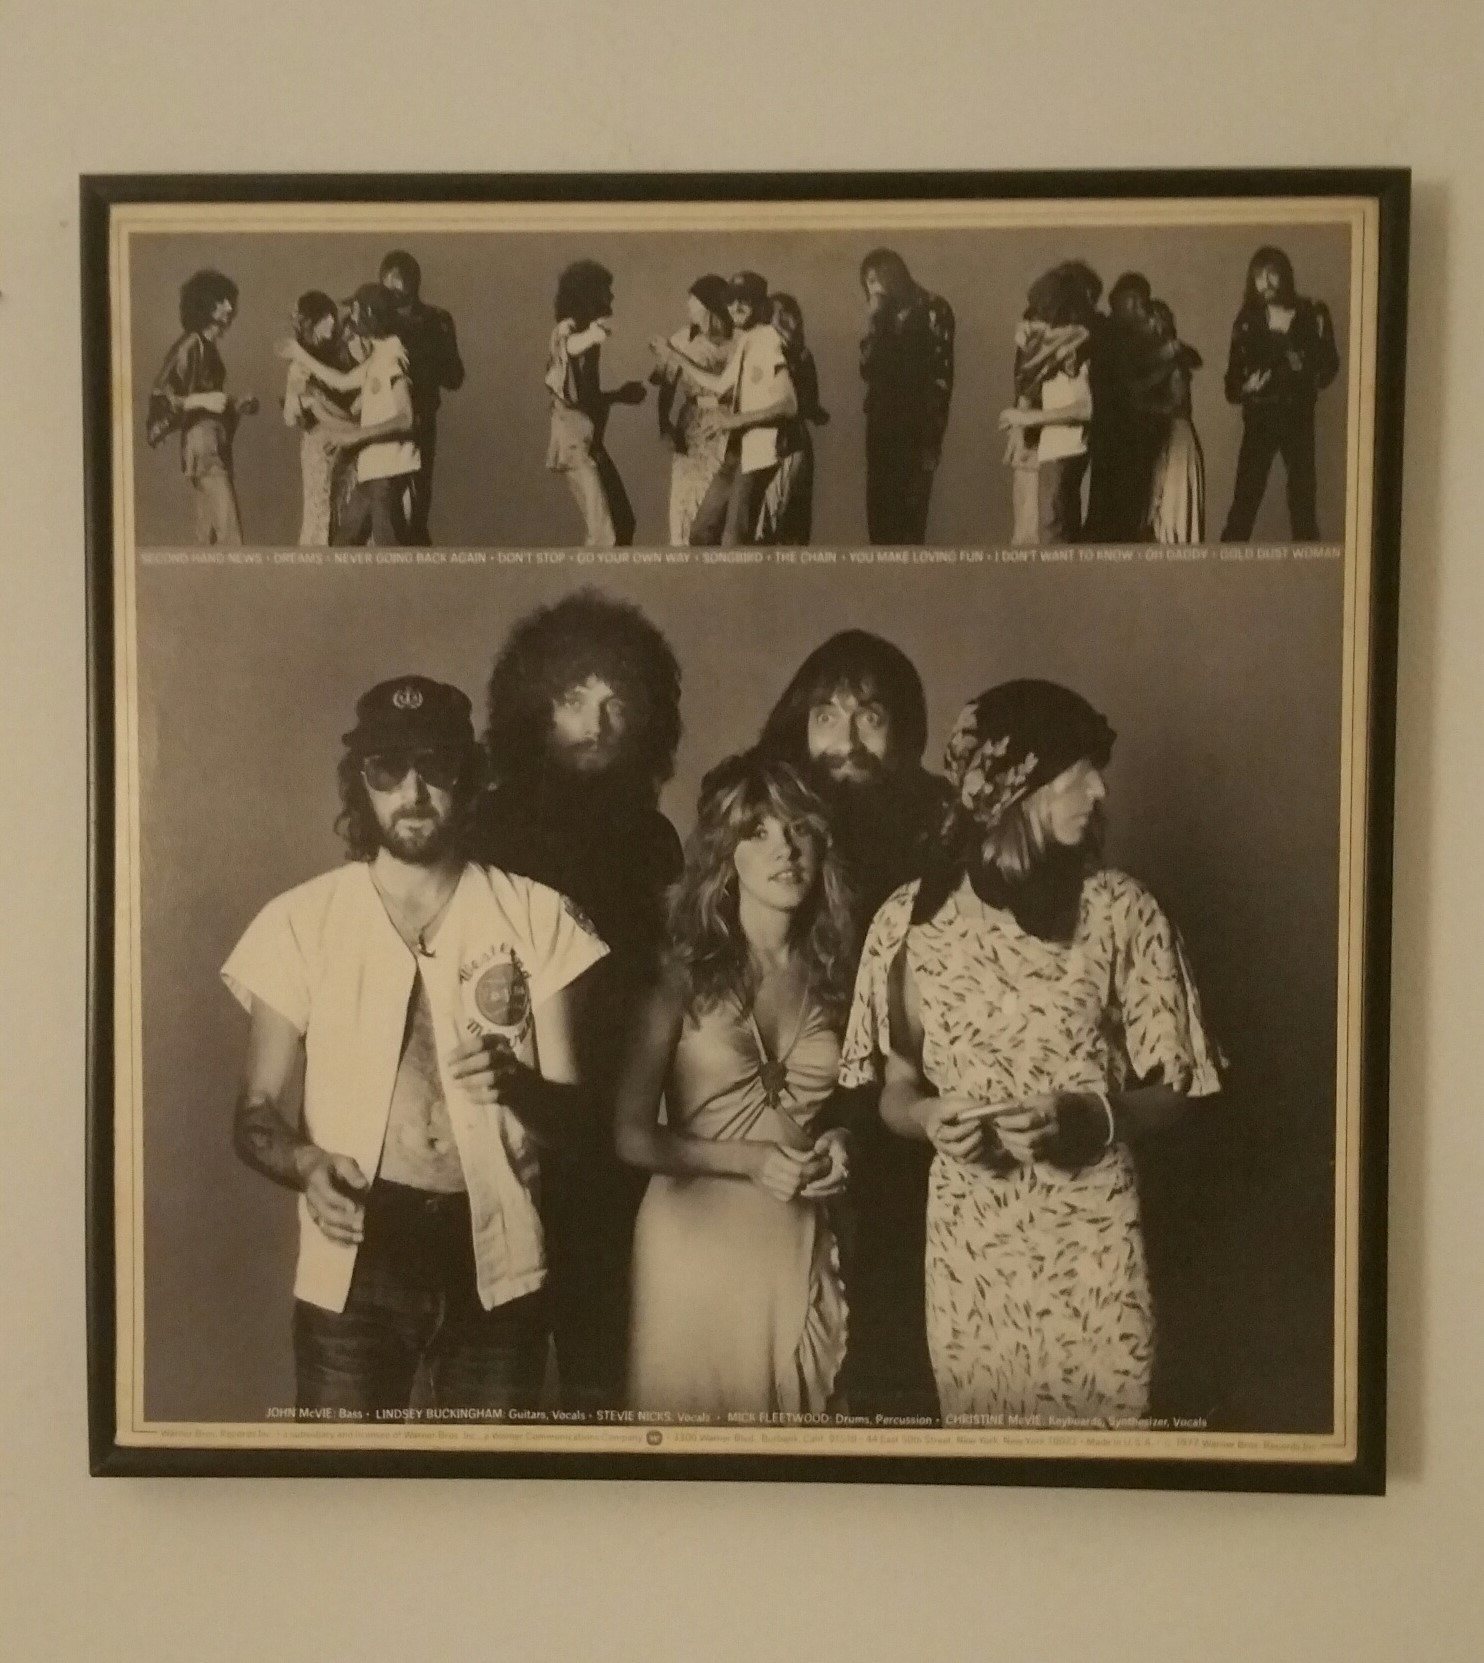 Photo of the back cover of the album Rumours by Fleetwood Mac.